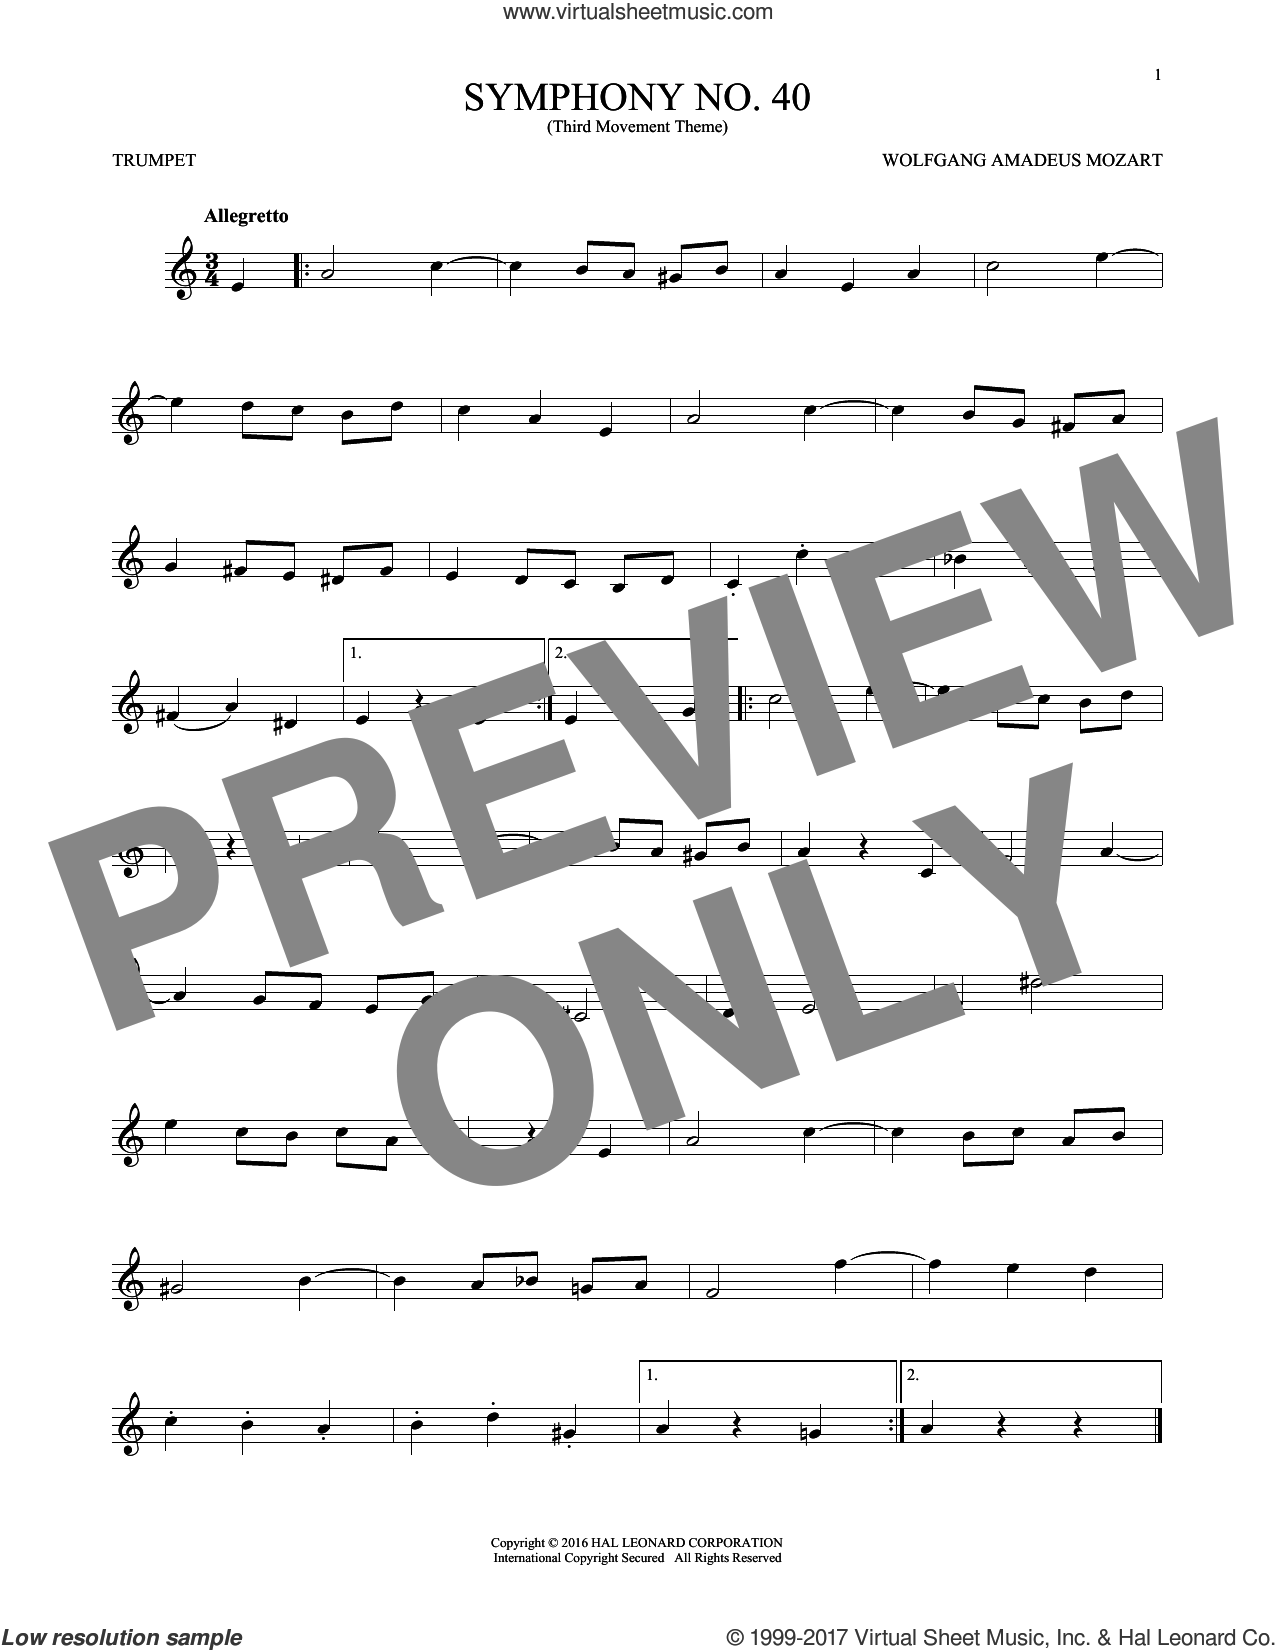 Symphony No. 40 In G Minor, Third Movement ('Minuet') sheet music for trumpet solo by Wolfgang Amadeus Mozart, classical score, intermediate skill level